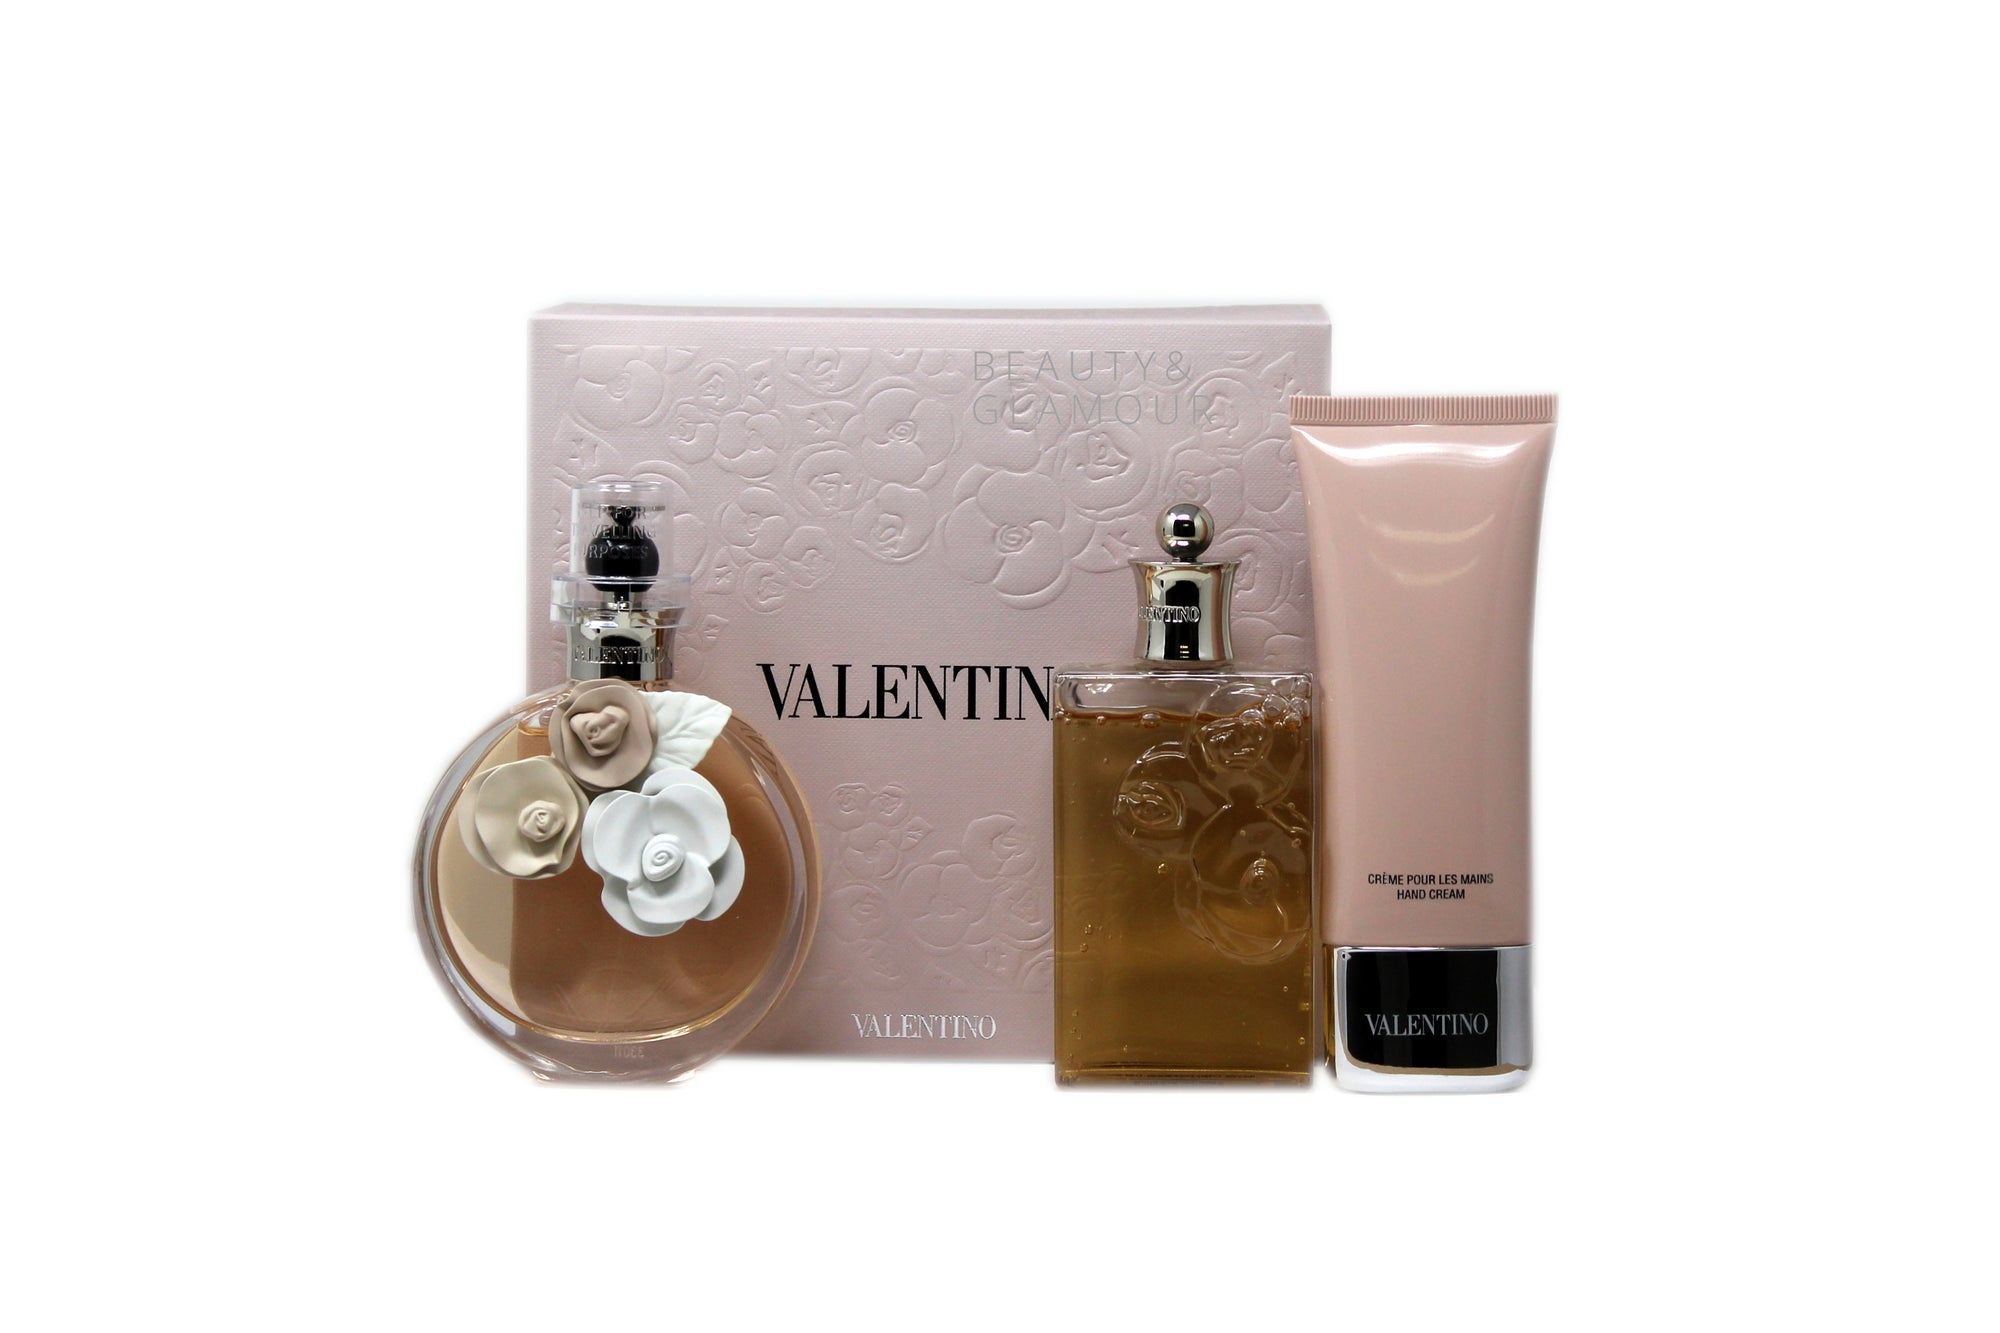 VALENTINO VALENTINA EAU DE PARFUM NATURAL SPRAY - VAPORISATEUR 80 ML/2.7 FL.OZ.